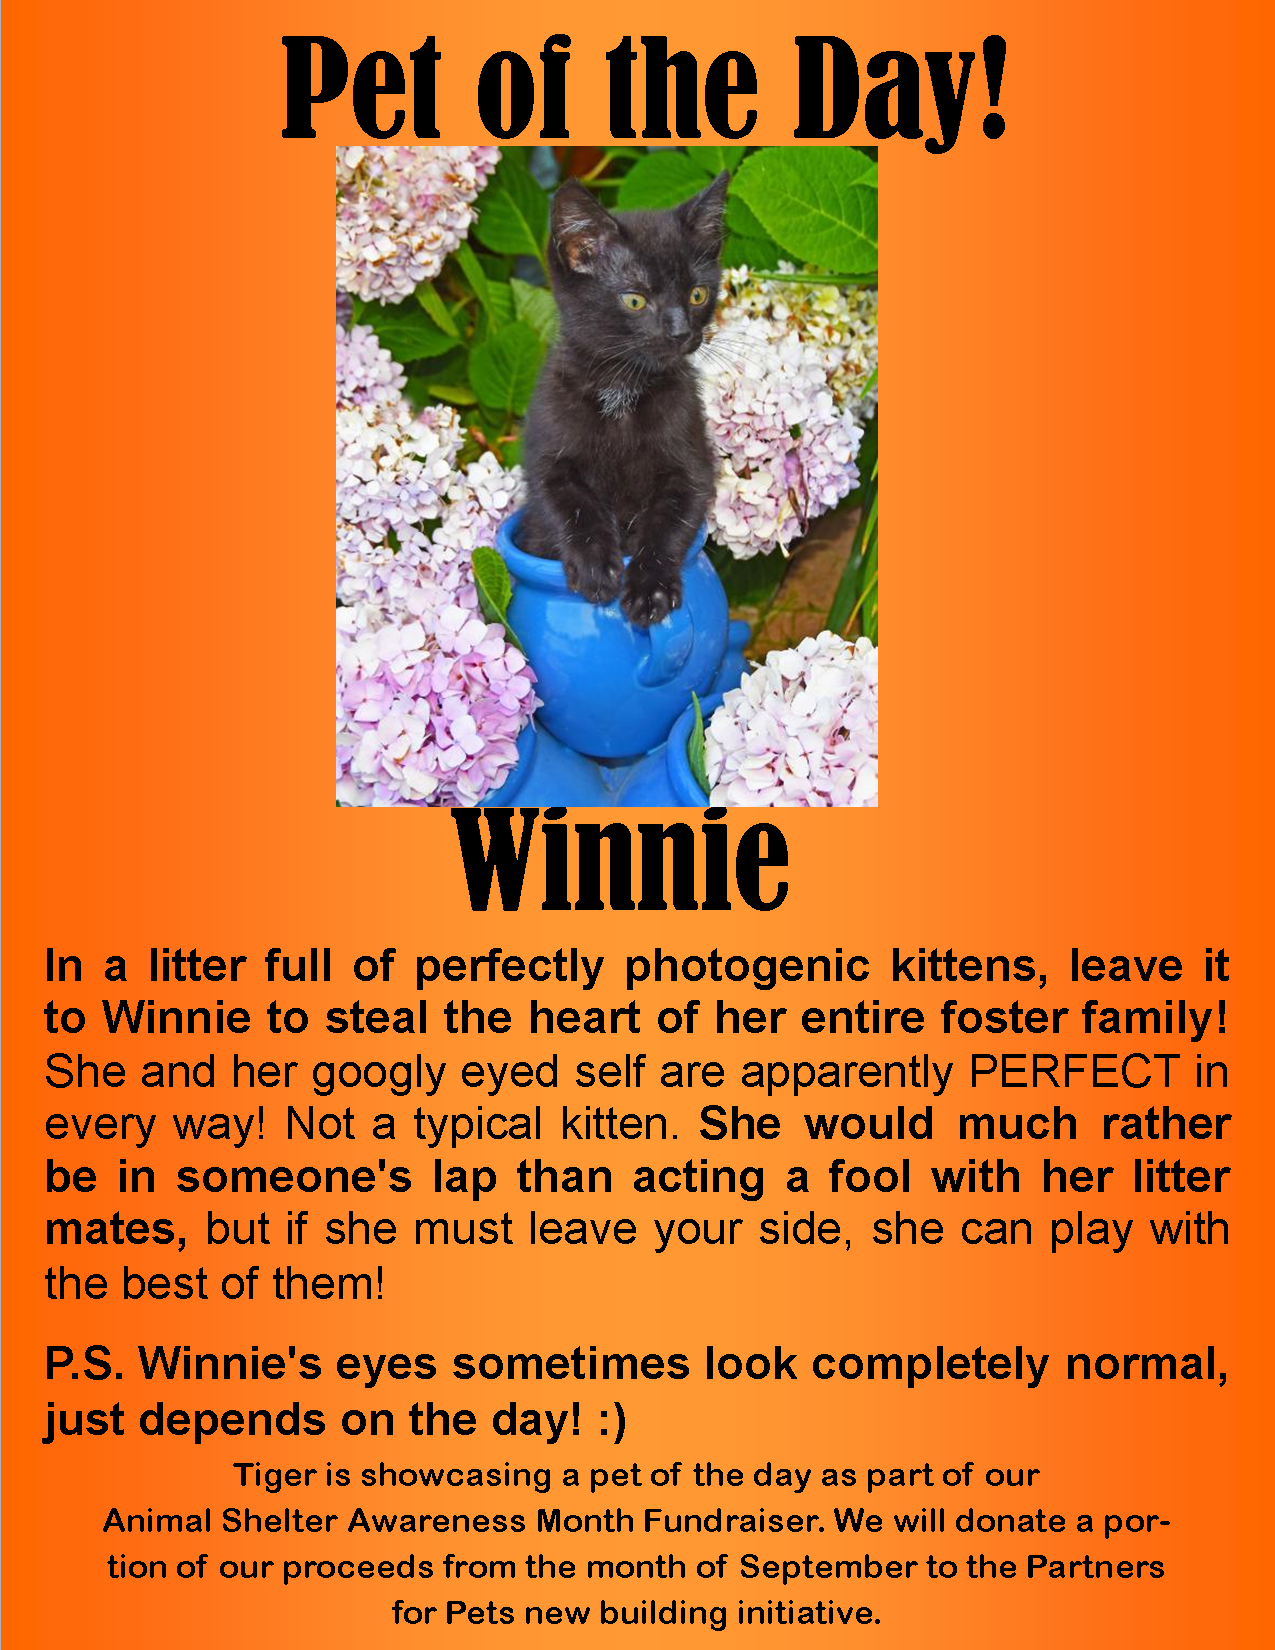 Winnie Sounds Like The Perfect Cuddle Buddy Meet Her At Partners